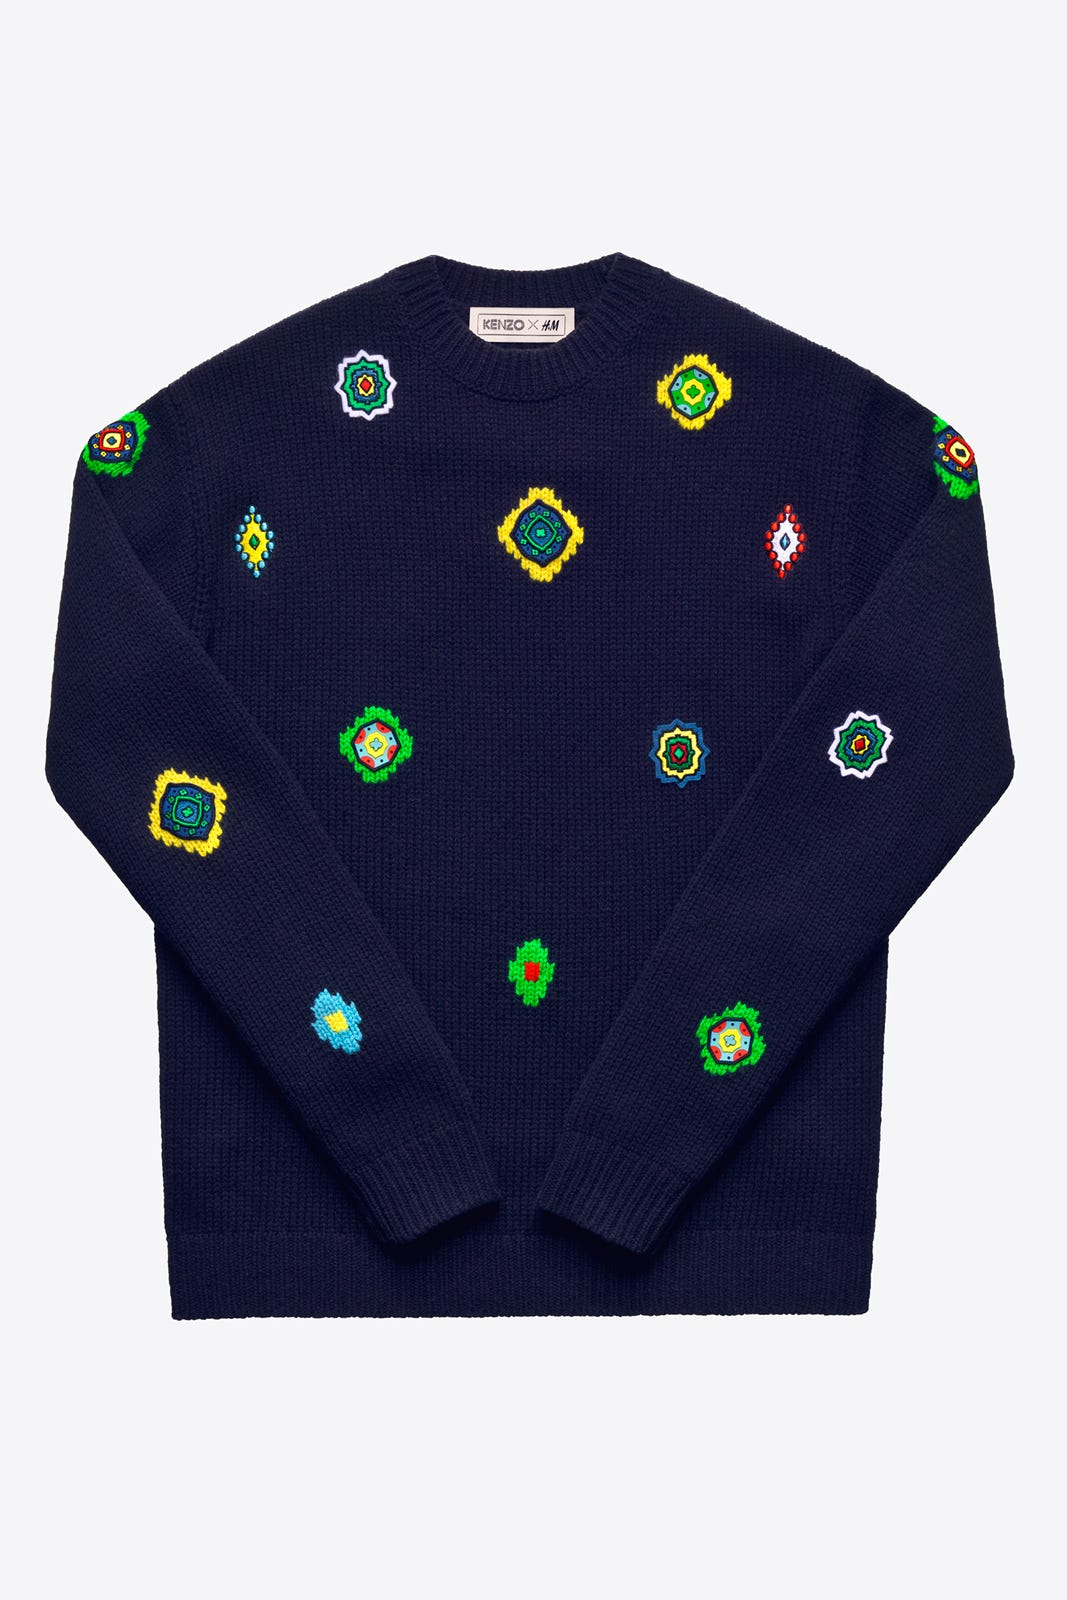 d20c917c392 HM Kenzo Full Clothing Collaboration Photos